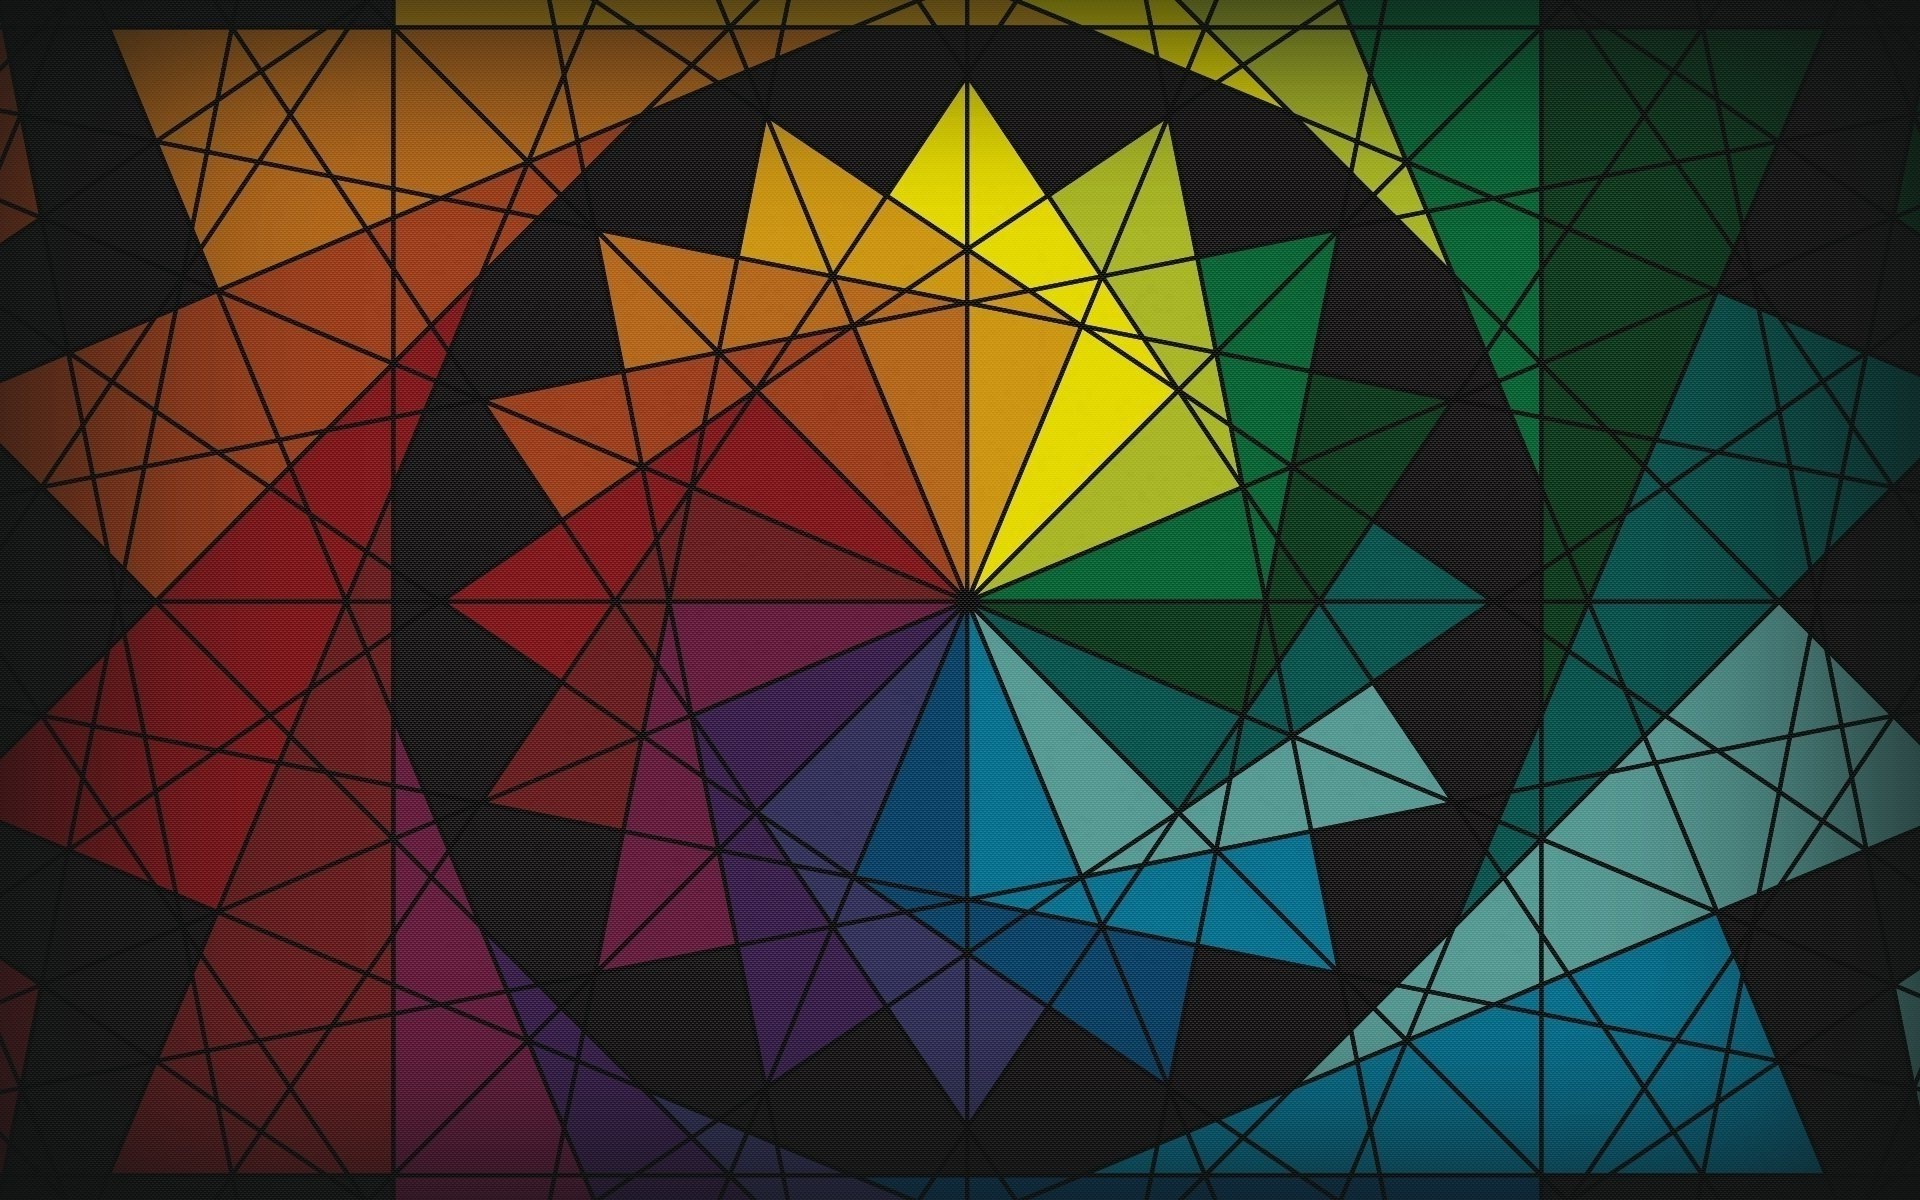 Colorful Abstract Wallpapers Hd Desktop And Mobile: Abstract, Colorful, Circle, Triangle, Color Wheel